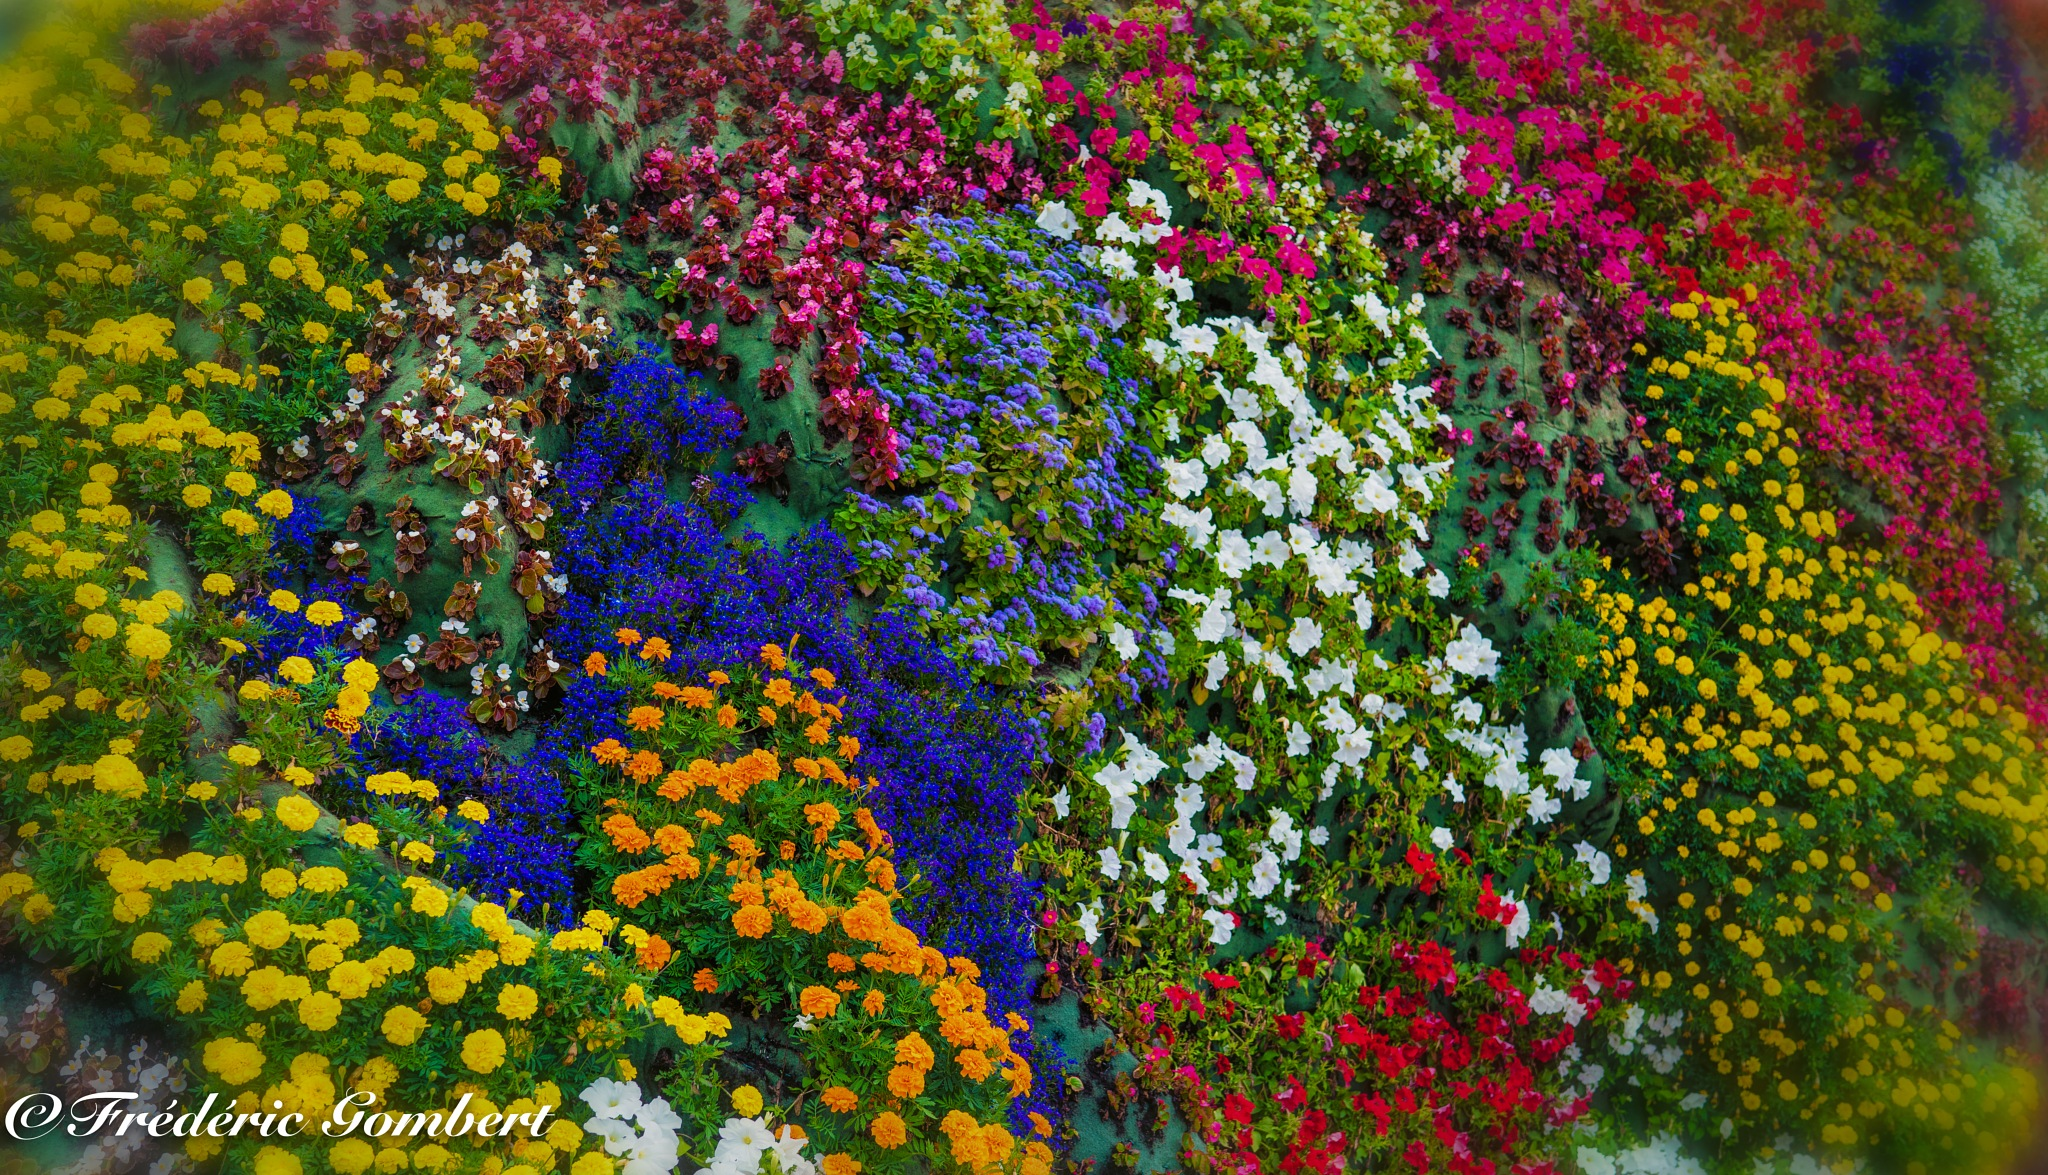 the wall by Frederic Gombert